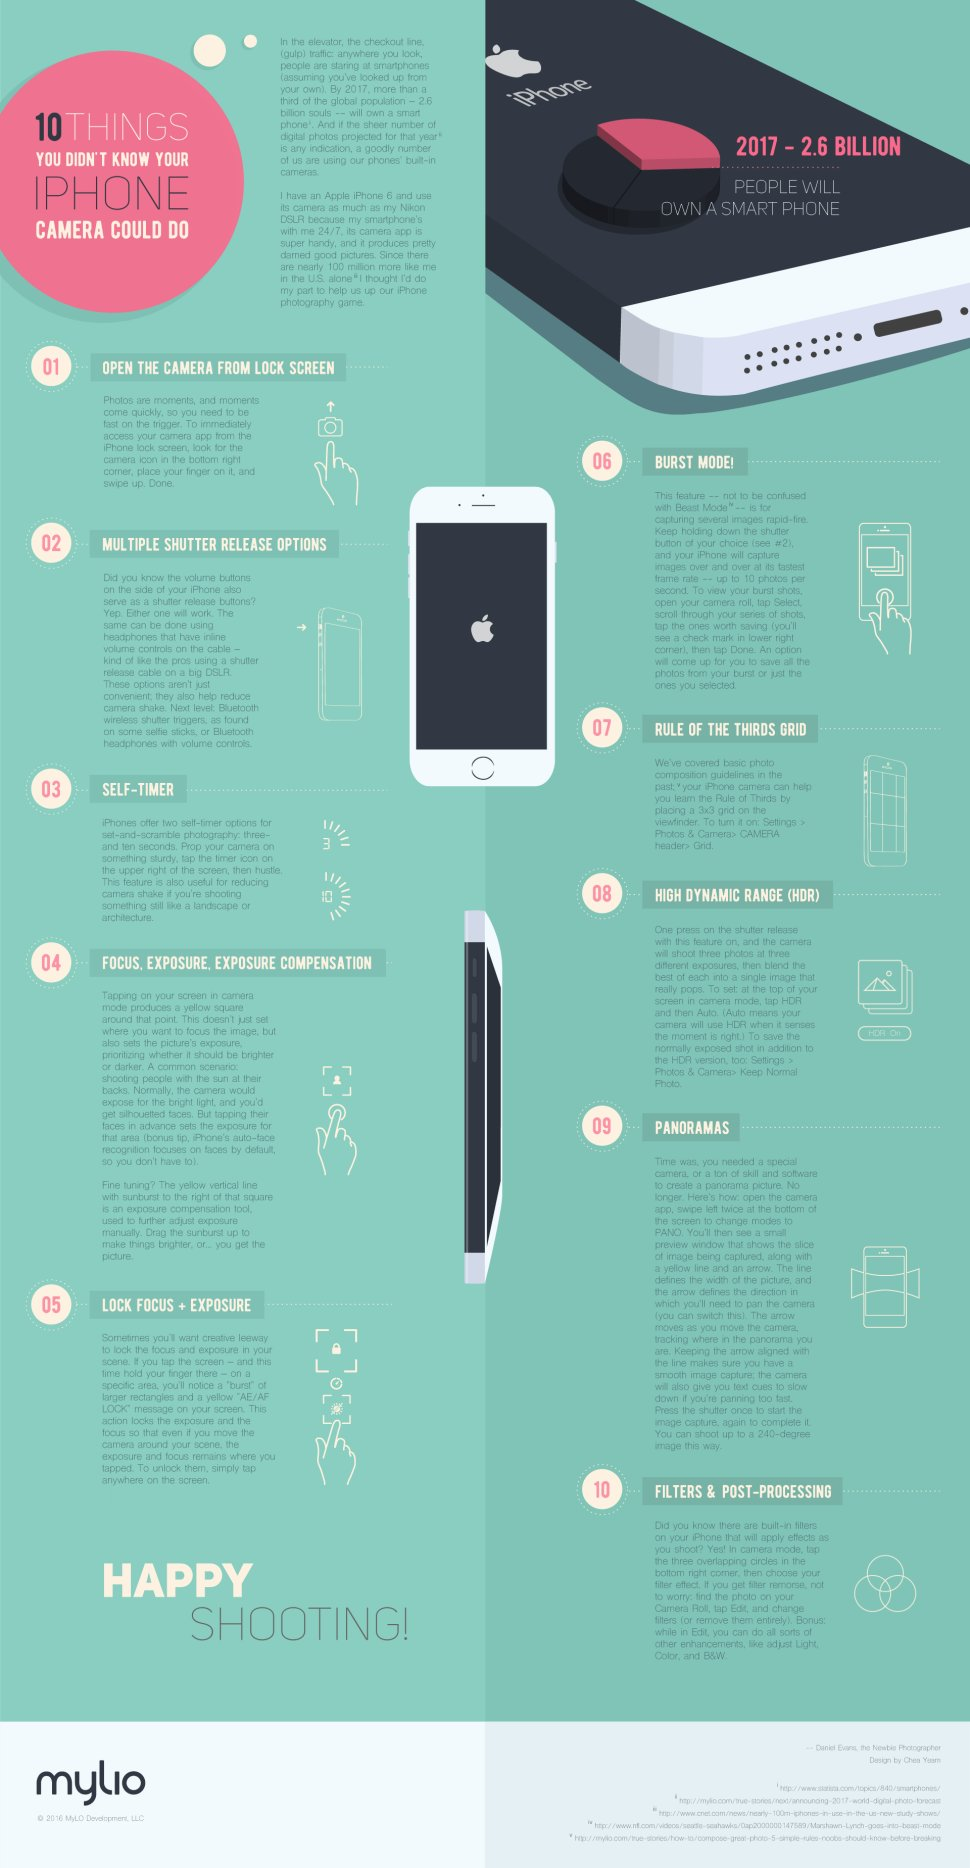 Infographic: 10 Things you didn't know your iPhone camera could do.